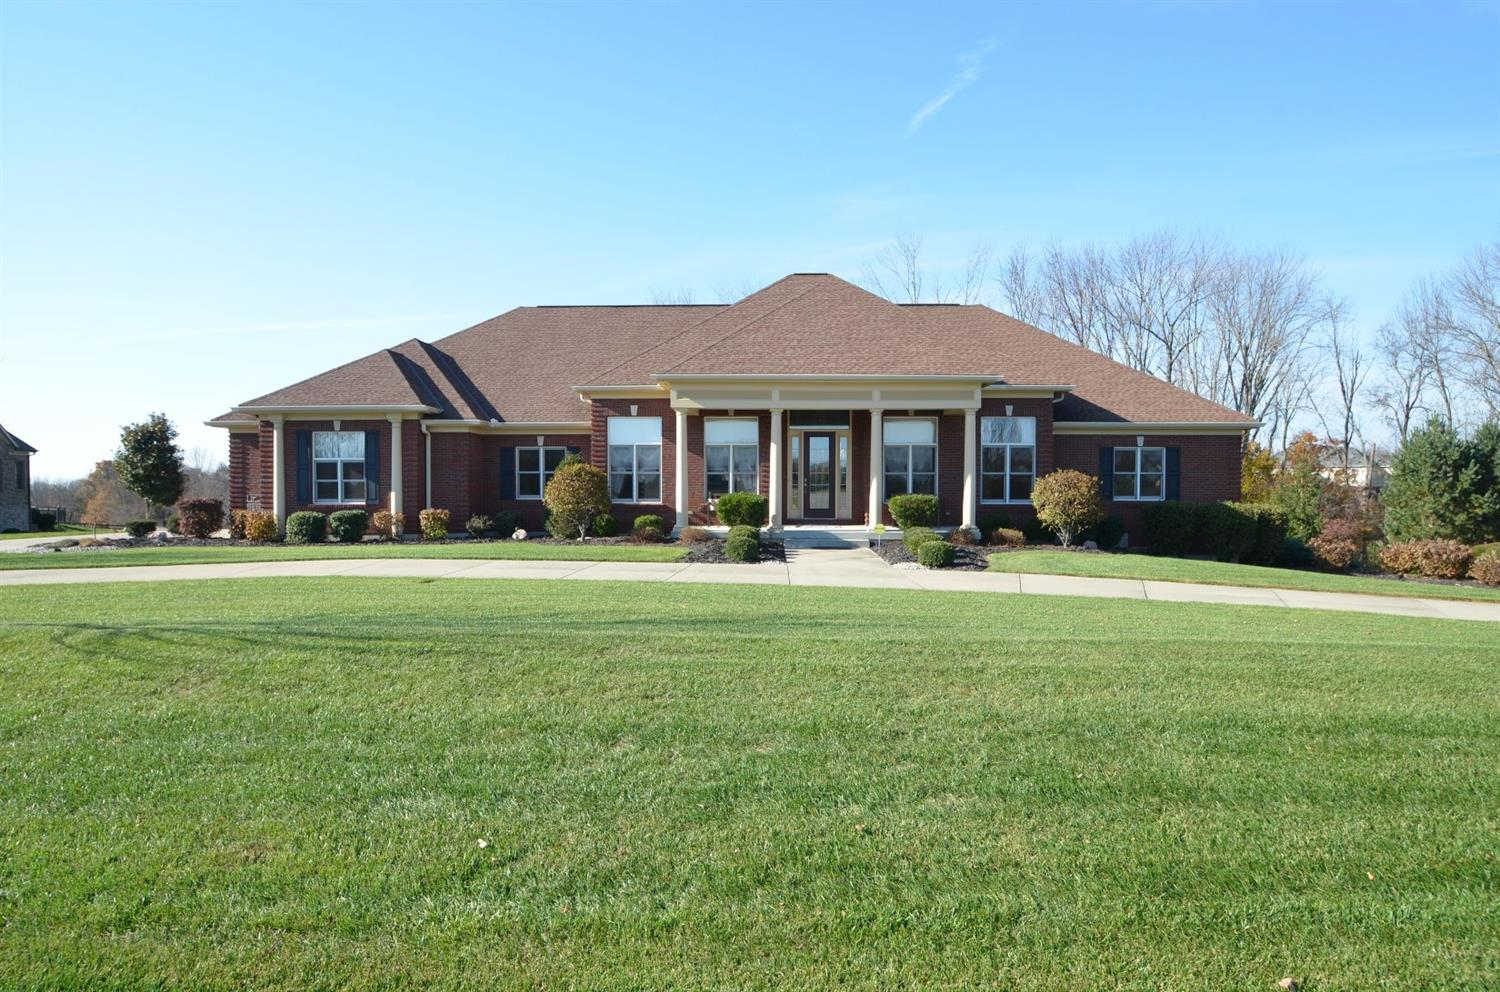 Photo of 3231 Ballantree Way  Verona  KY